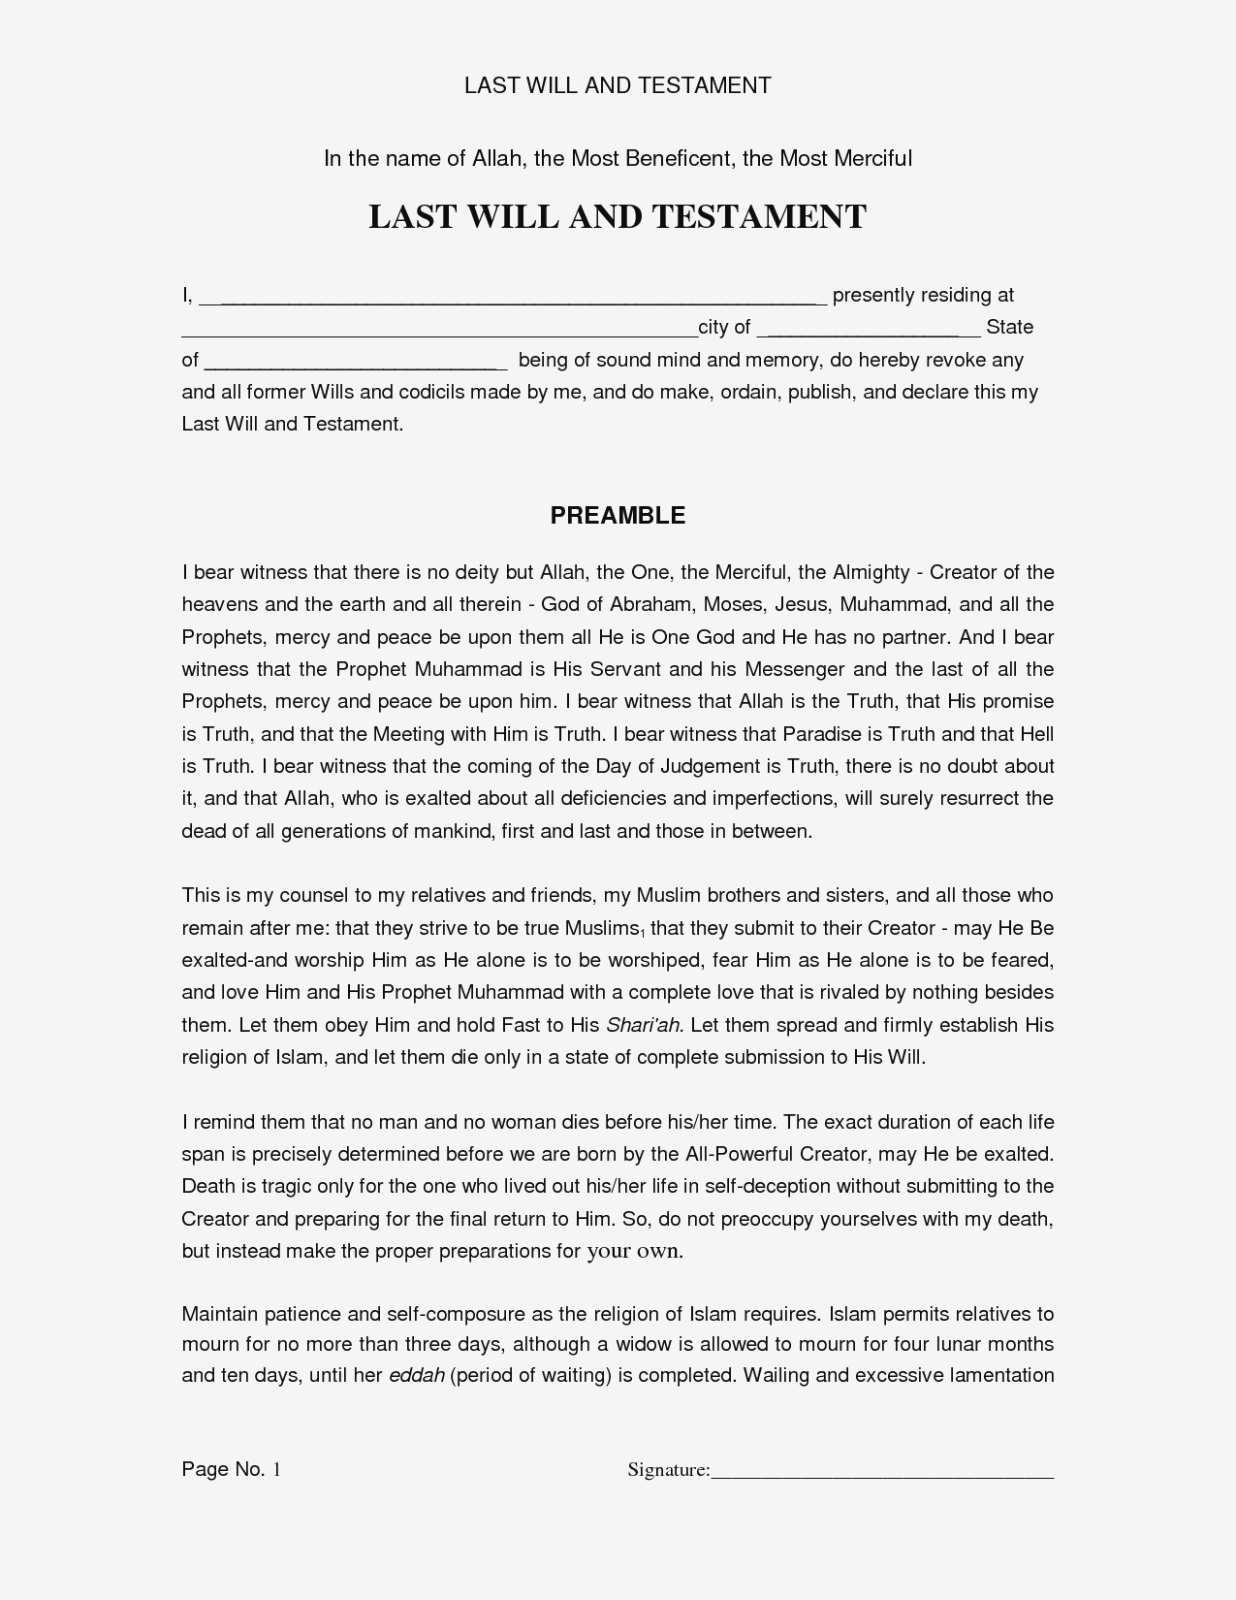 Last Will And Testament Form Free Online